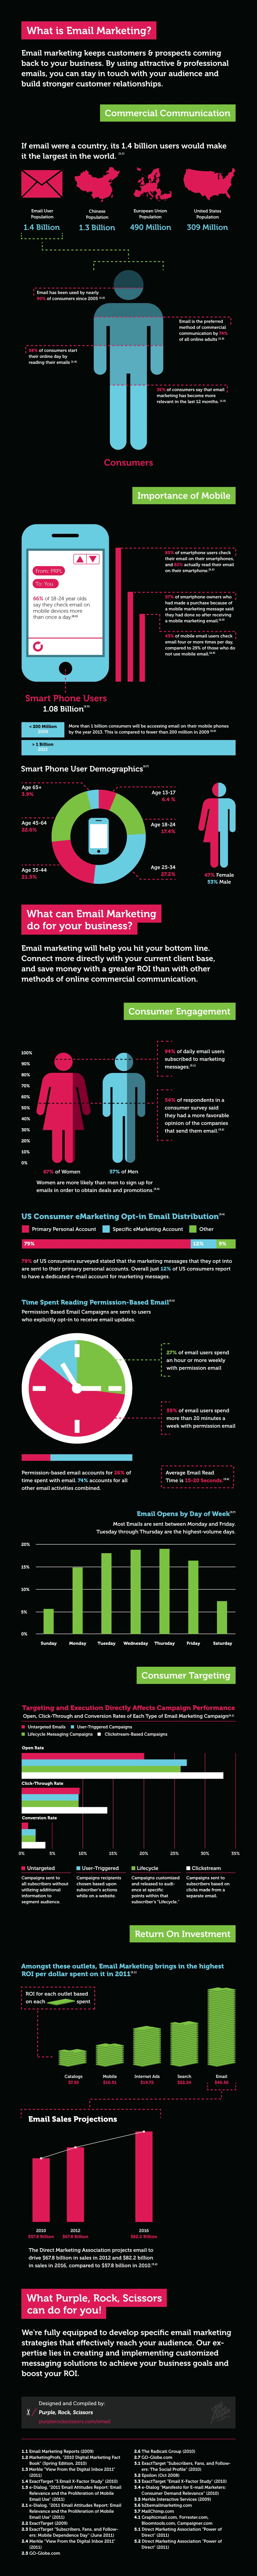 Email Marketing anatomy-infographic